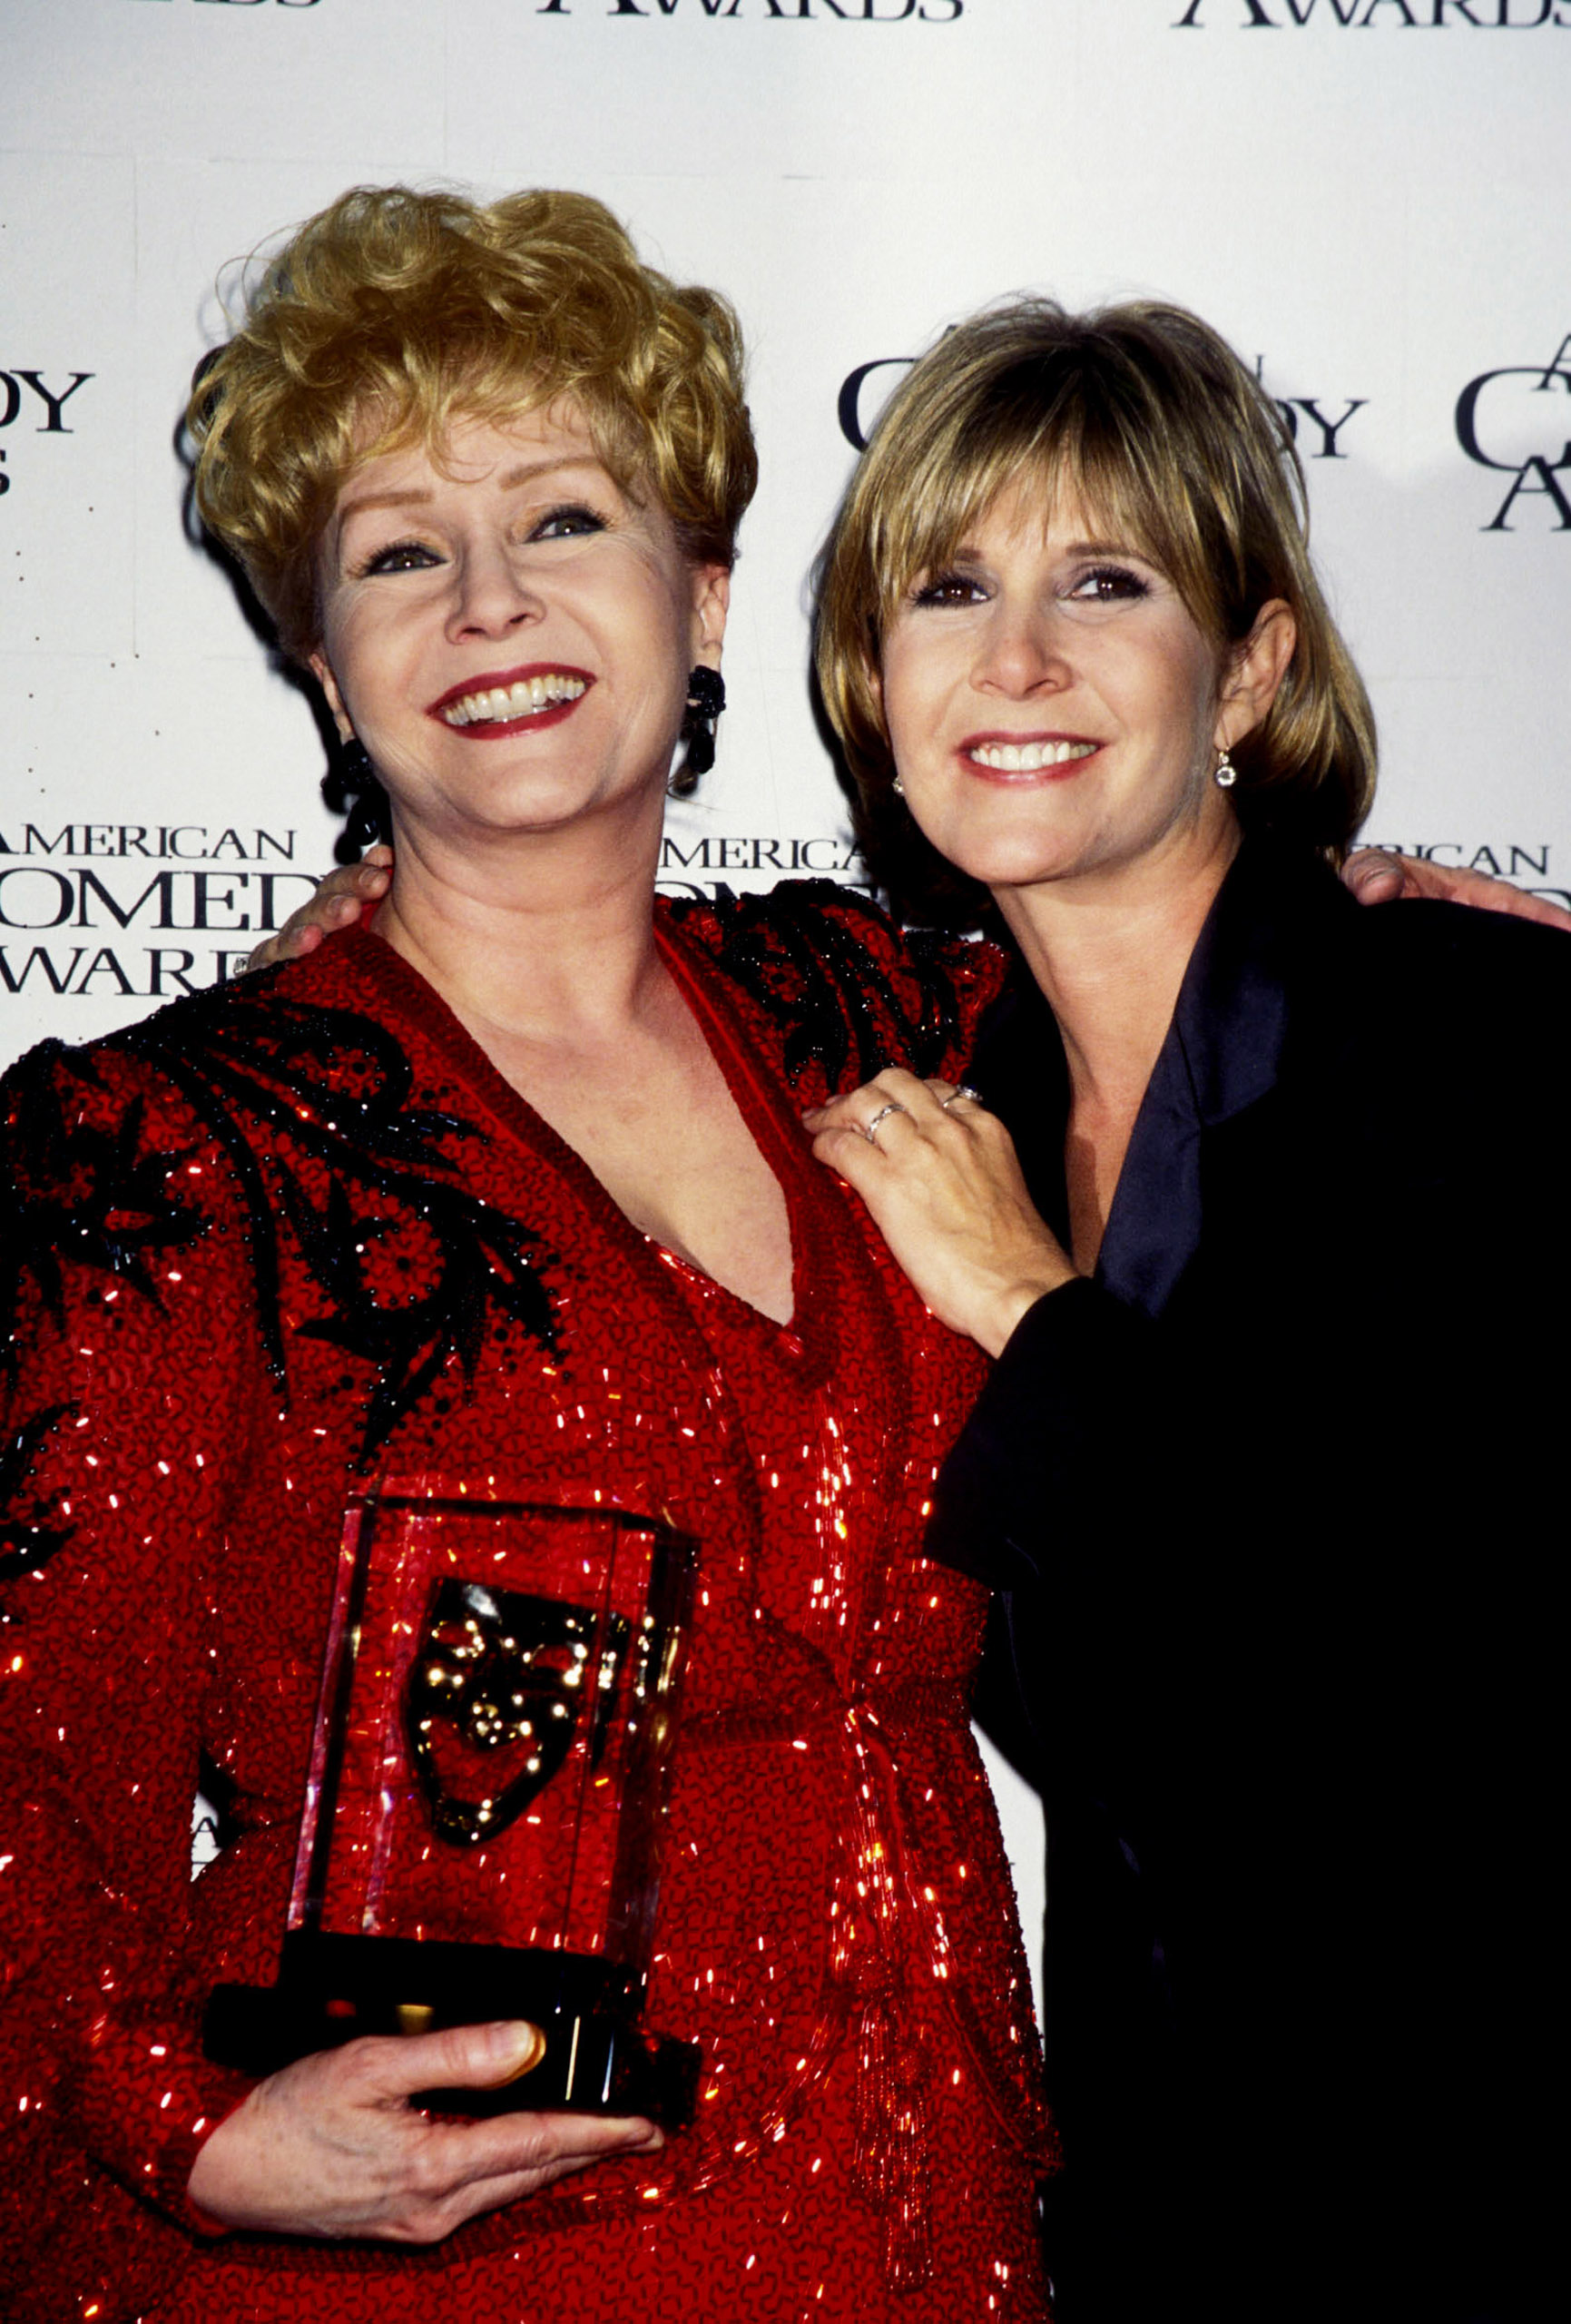 Debbie Reynolds and Carrie Fisher during 11th Annual American Comedy Awards at The Shrine Auditorium in Los Angeles, California, United States.